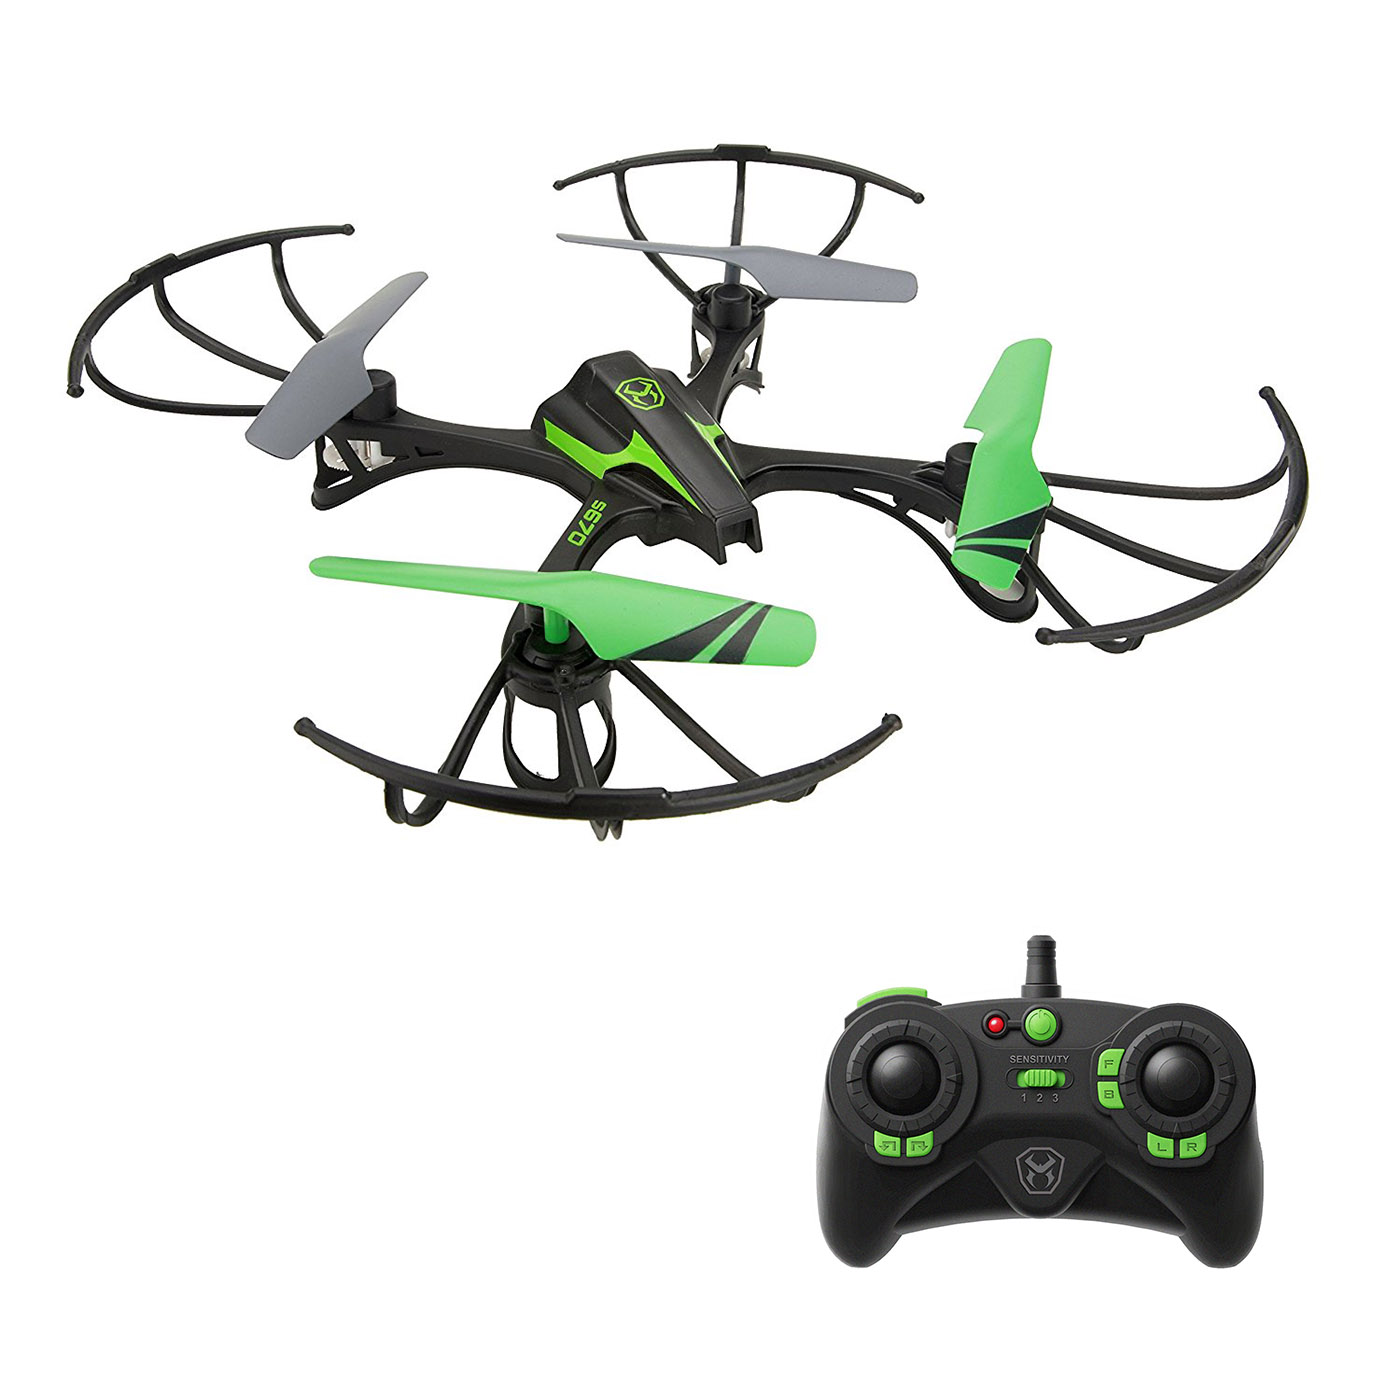 Sky Viper s670 UL Certified Stunt Drone with One-Touch Flips and Barrel Rolls